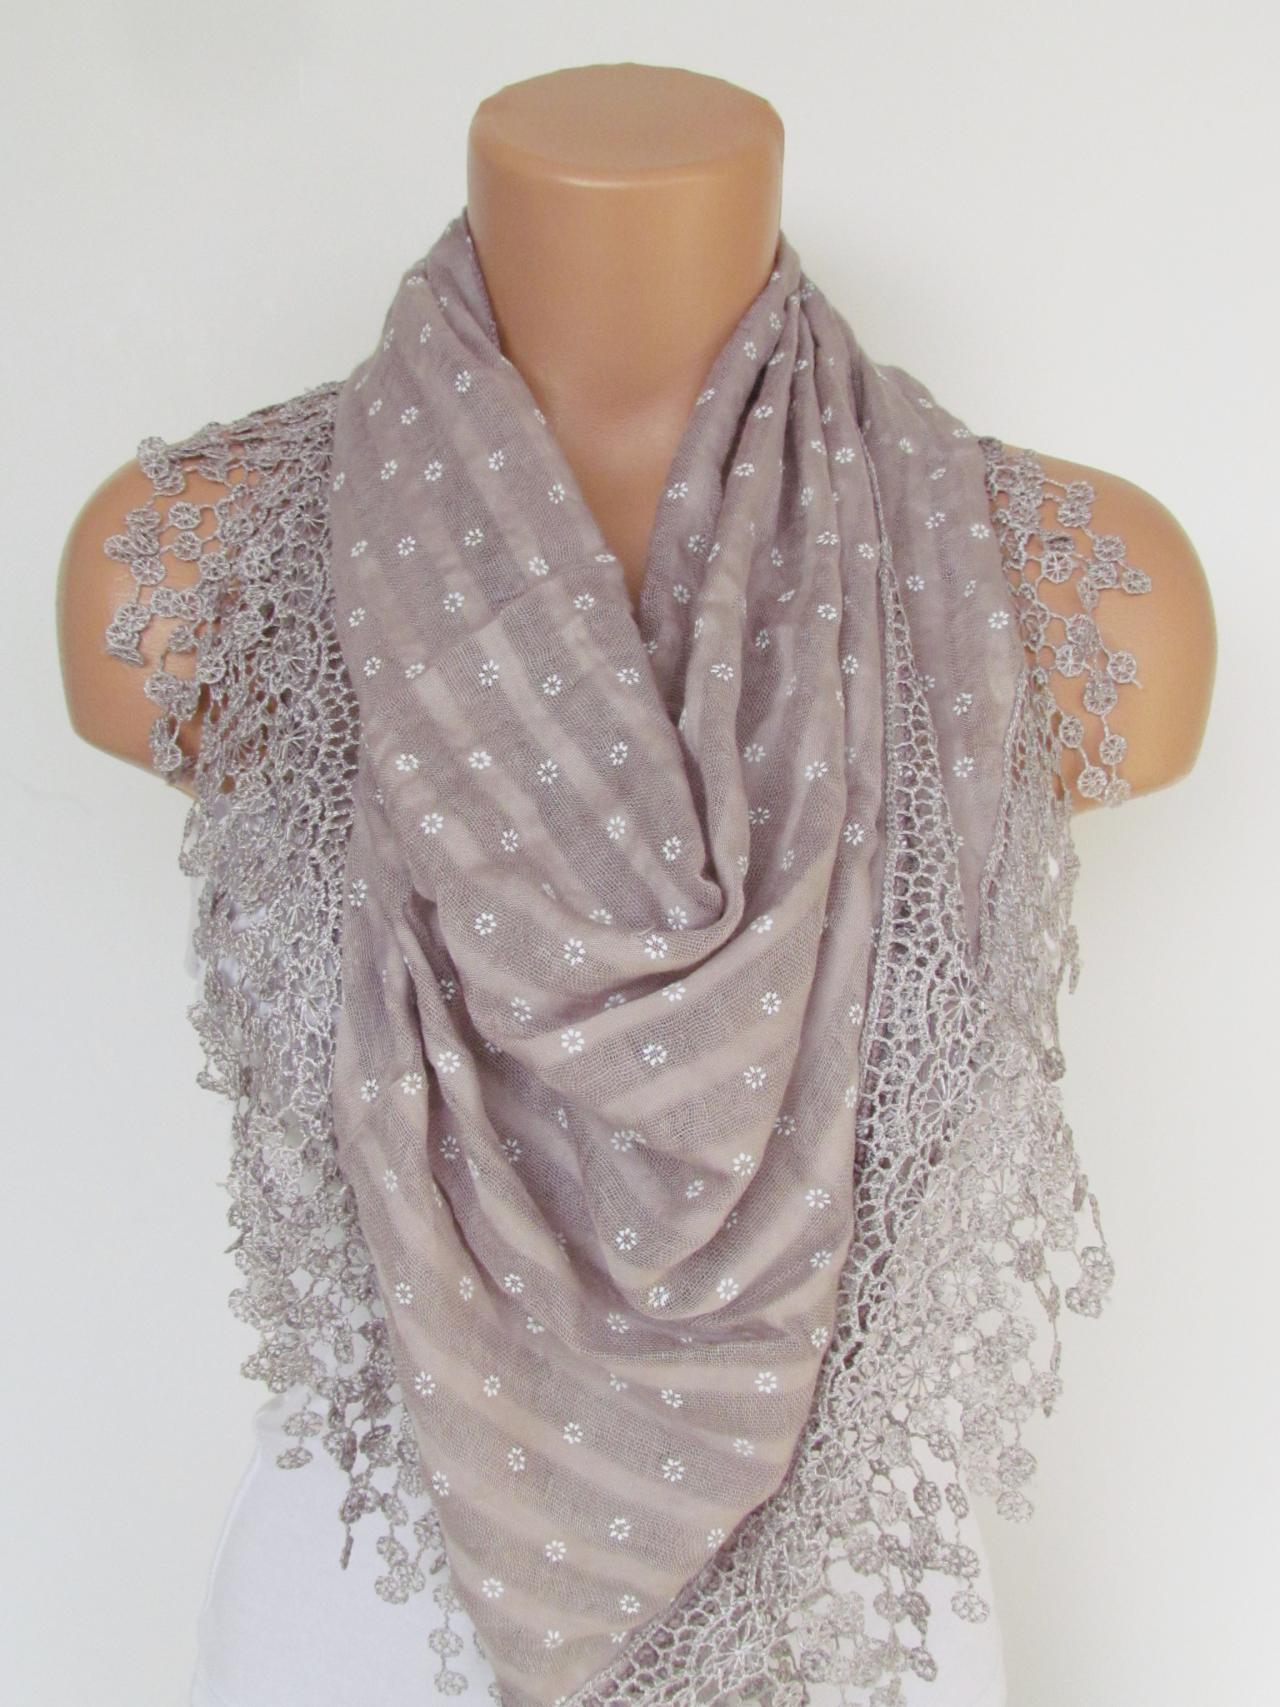 Powder Scarf with fringe -Triangle Shawl Scarf-New Season-Necklace-Lariat- Neckwarmer- Infinity Scarf--Gift For Her